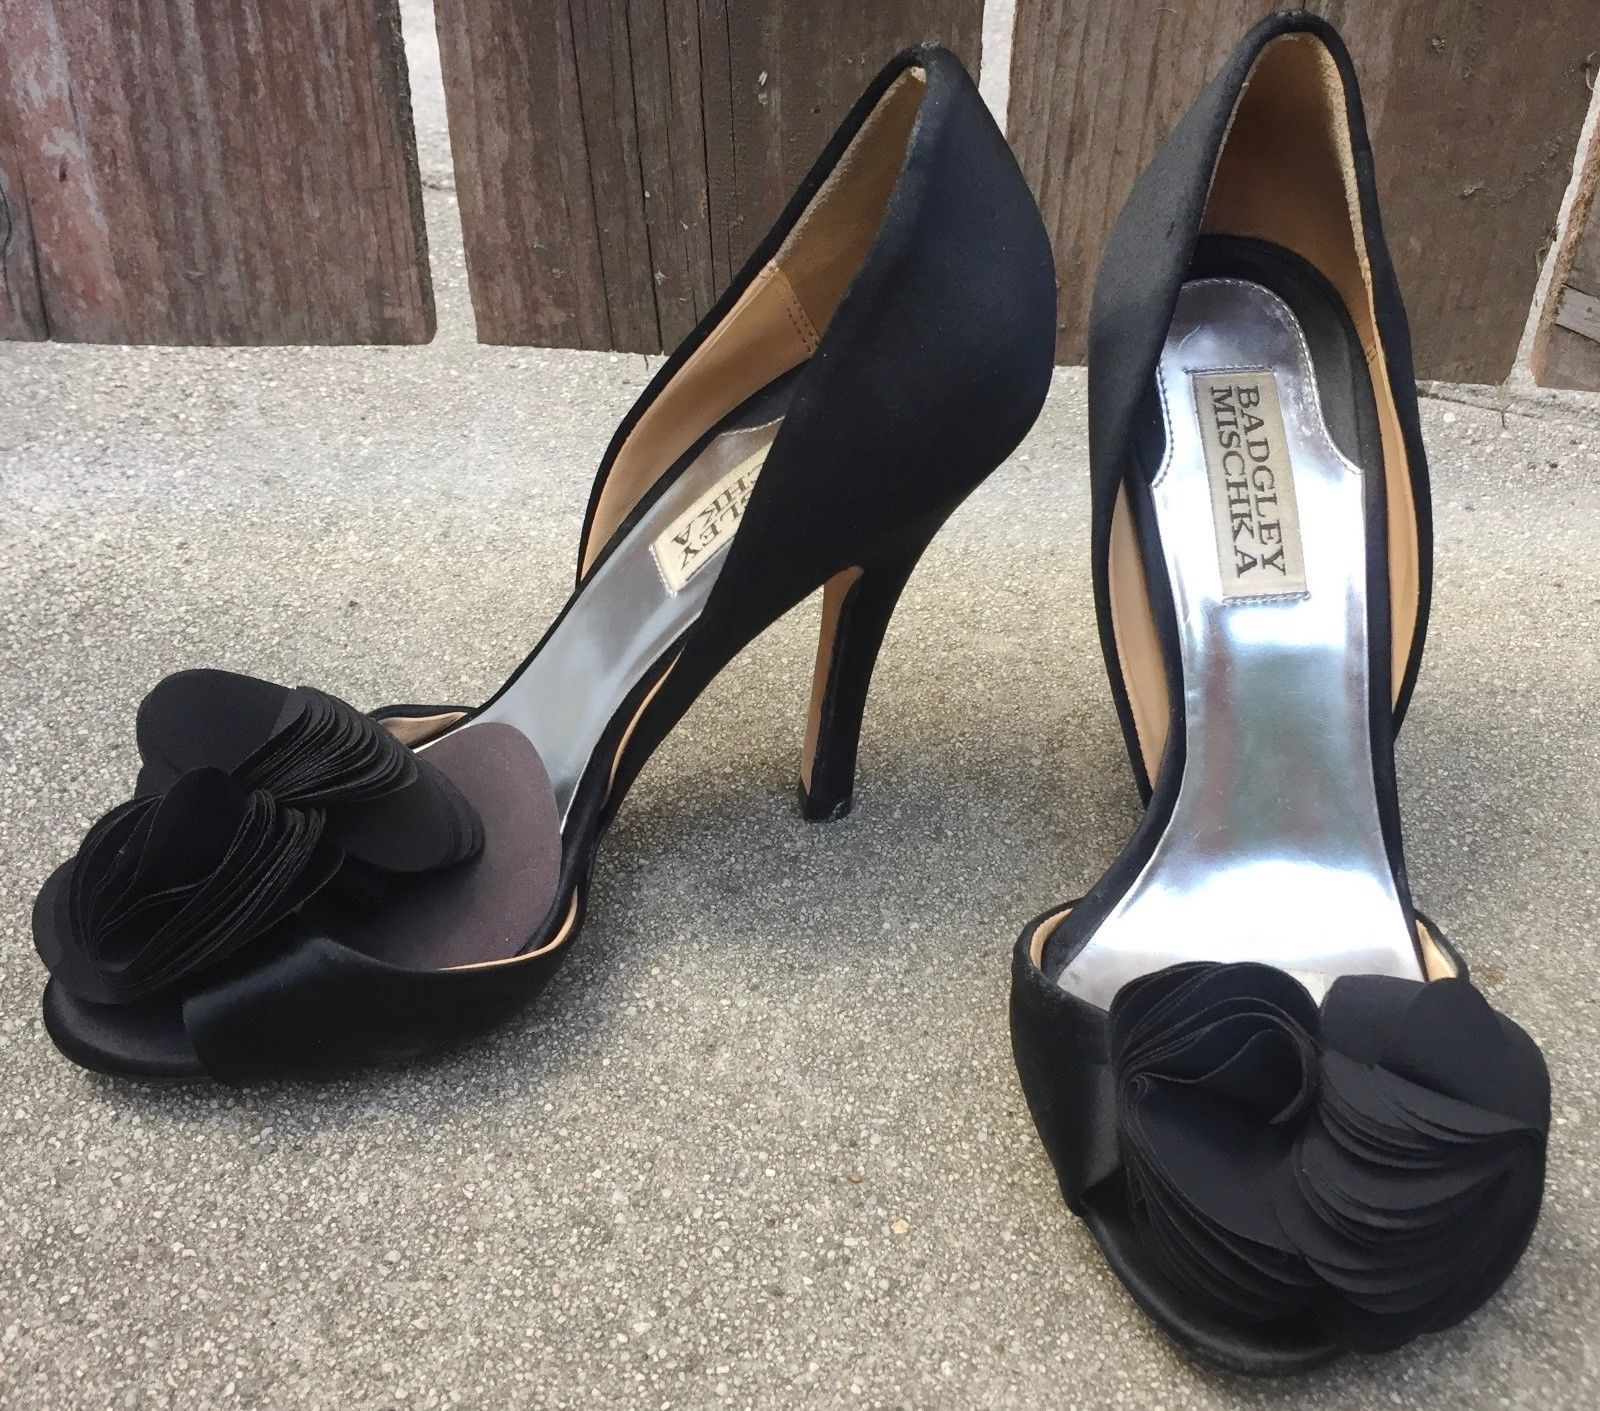 82f197c06d1e Badgley Mischka Randall Peep Toe Sz 6 M and 28 similar items